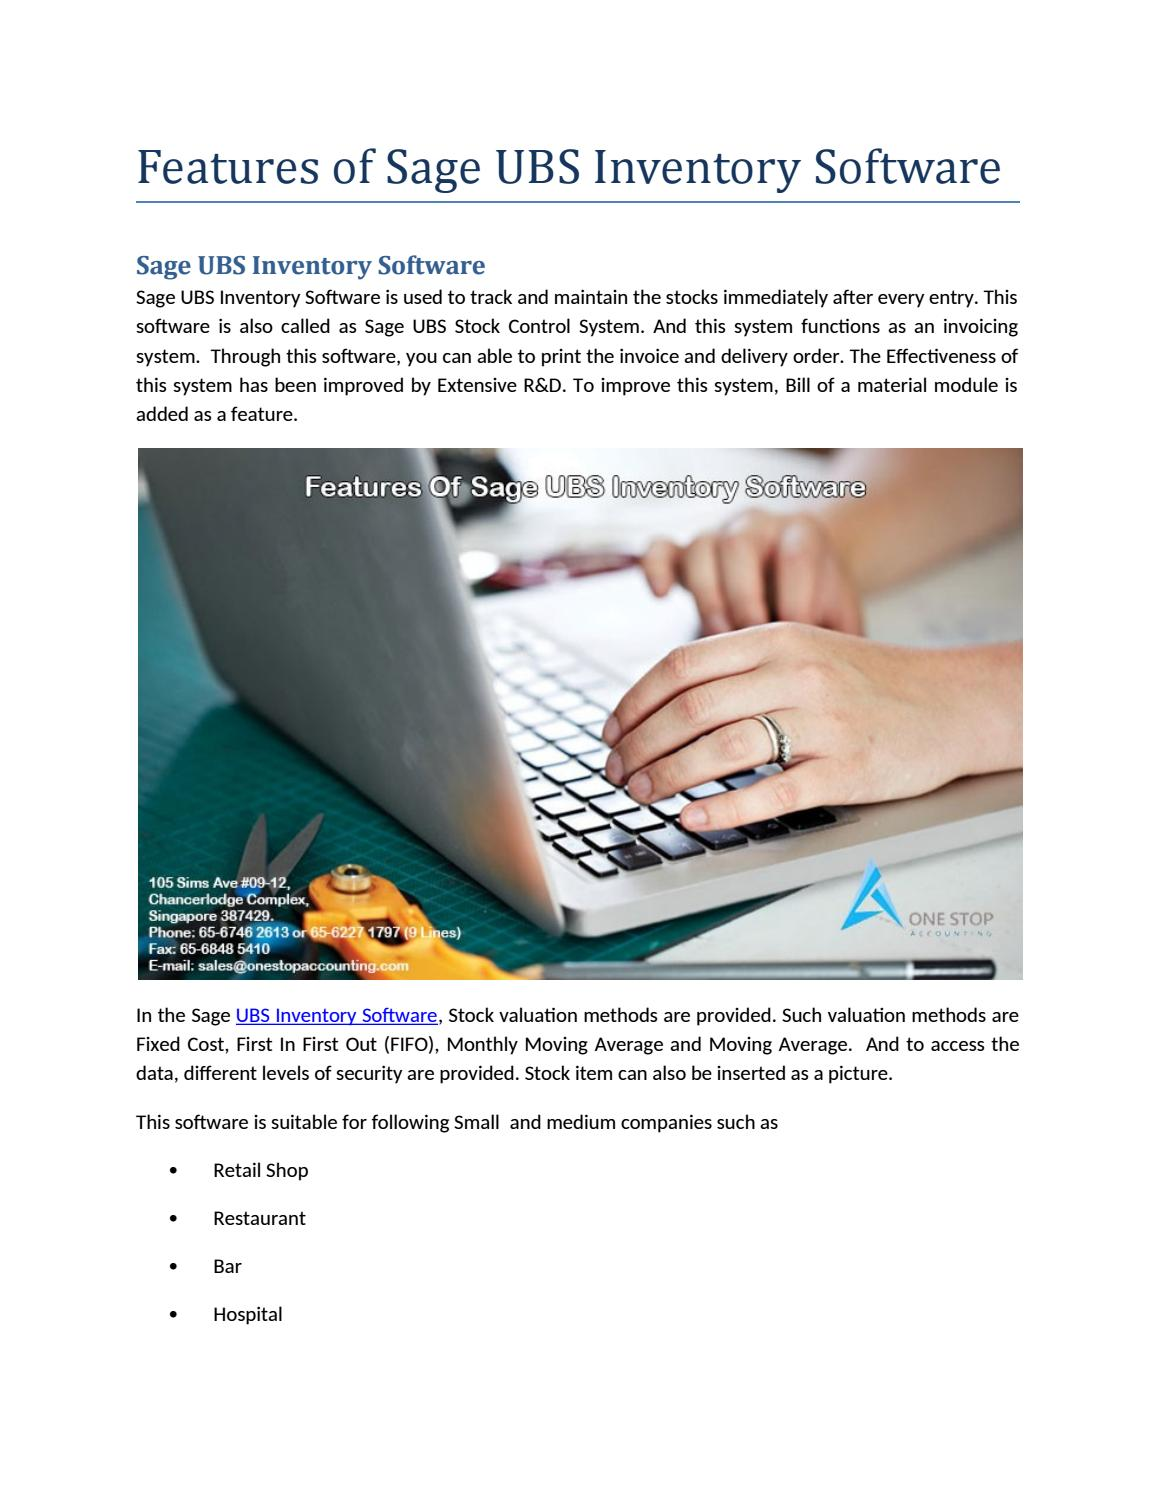 Features of Sage UBS Inventory Software by Onestopaccounting - issuu